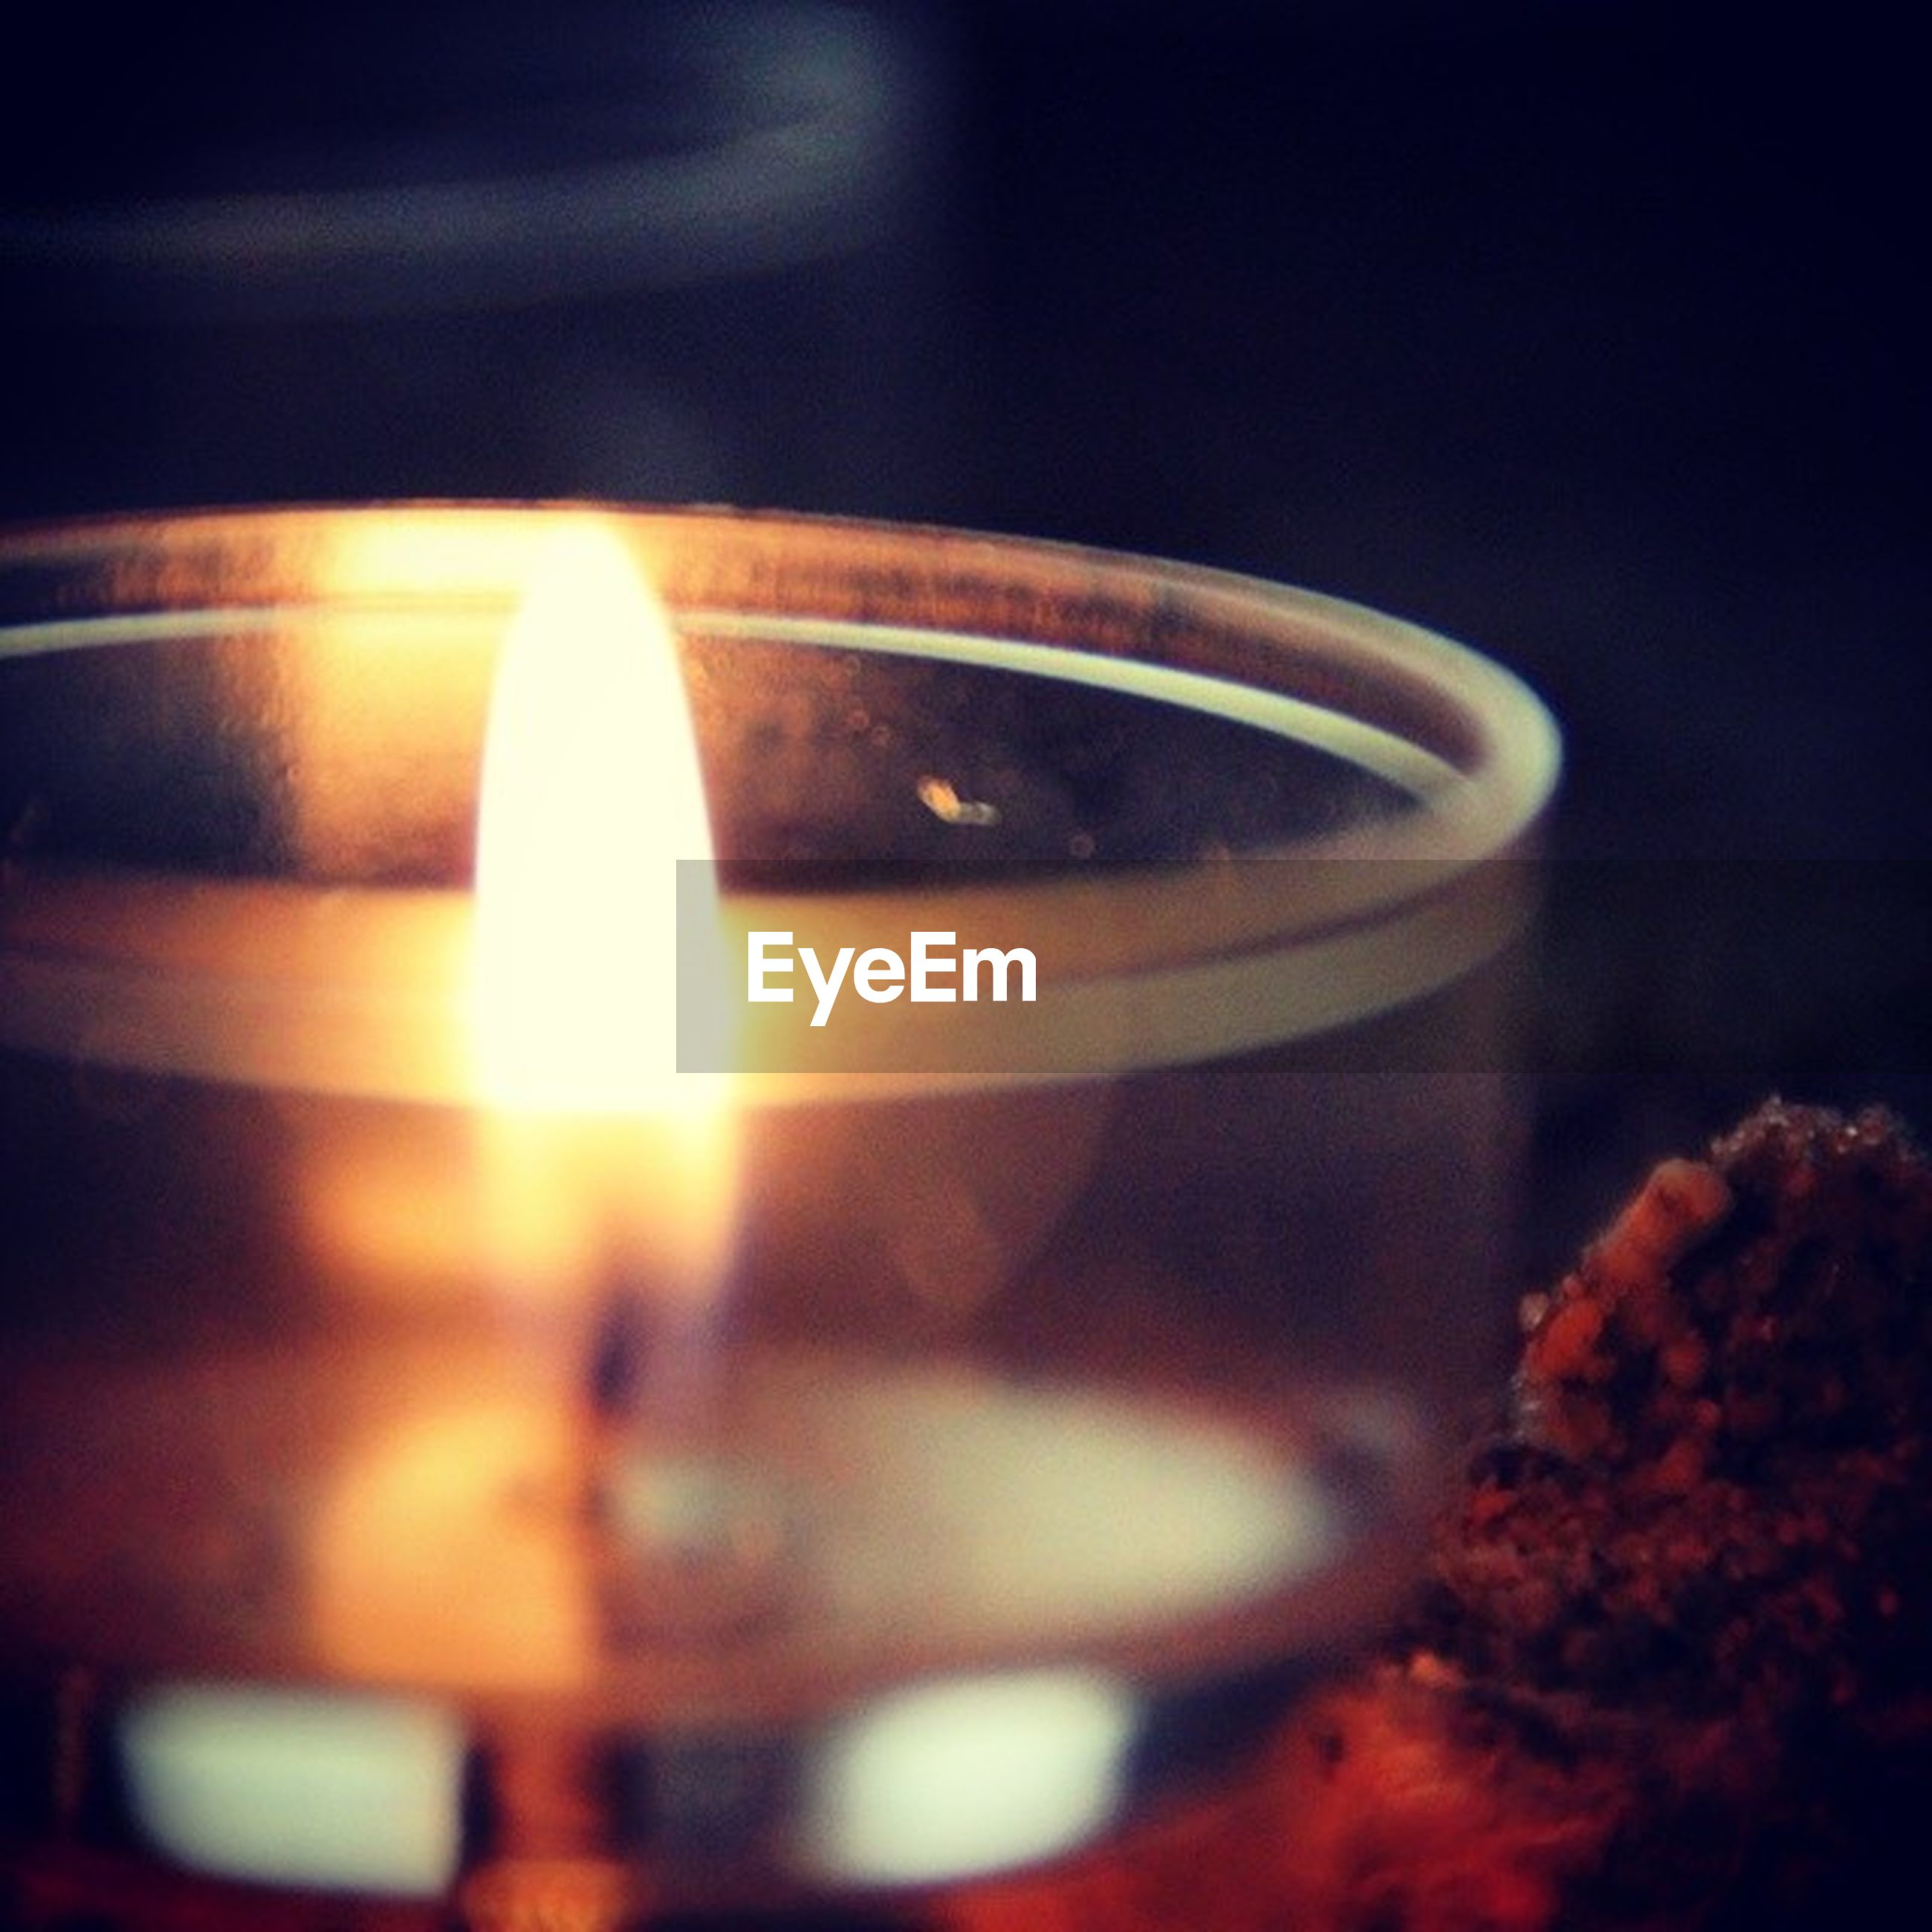 flame, burning, candle, glowing, close-up, illuminated, heat - temperature, fire - natural phenomenon, focus on foreground, selective focus, indoors, lit, night, fire, light - natural phenomenon, lens flare, dark, no people, glass - material, reflection